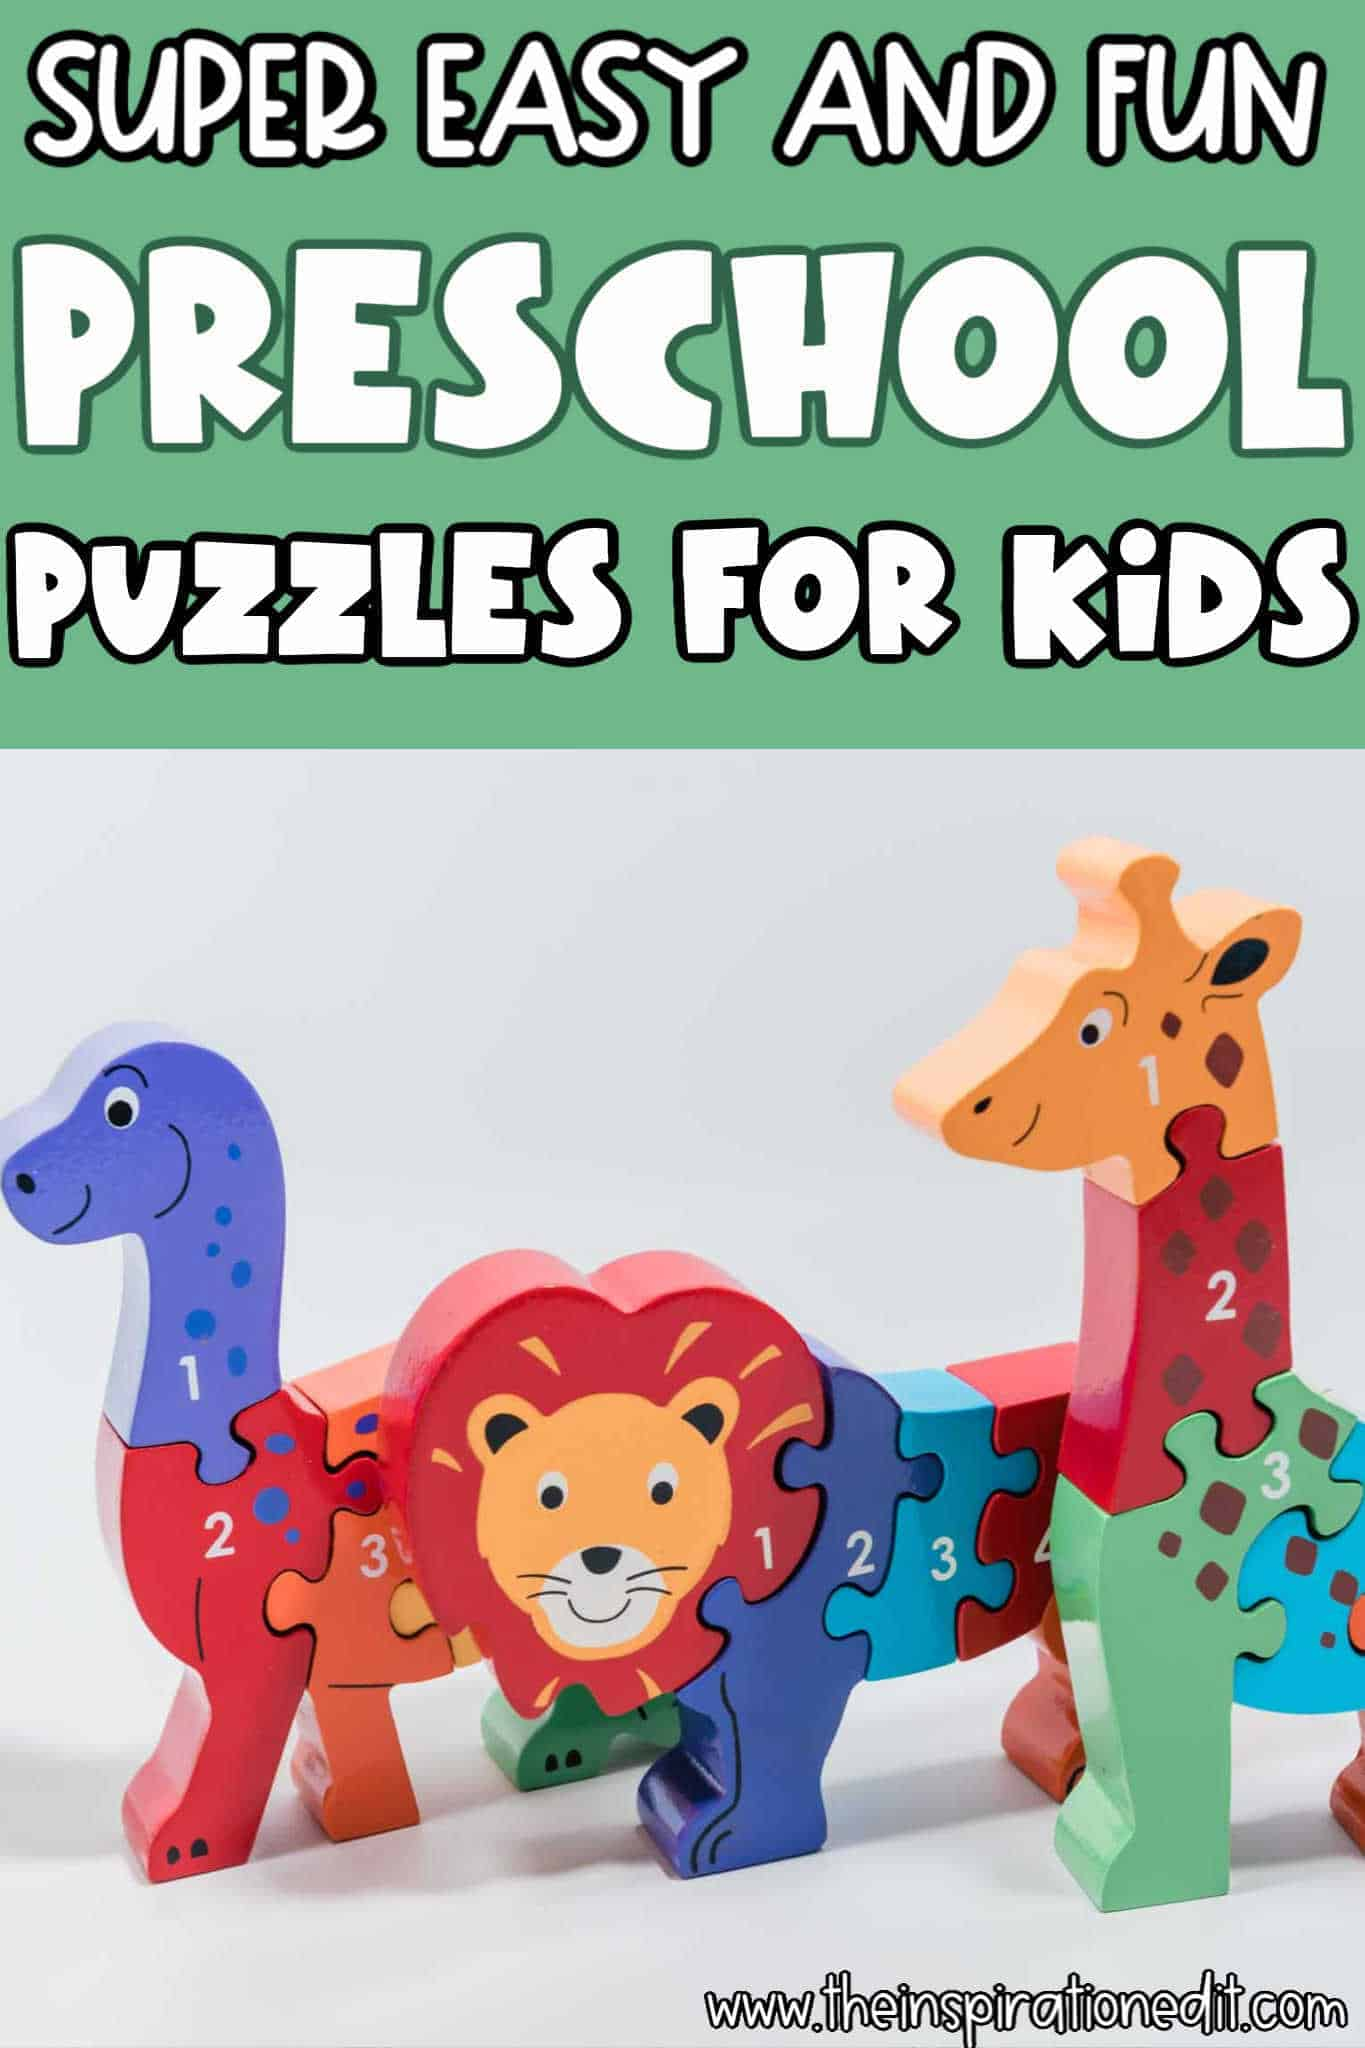 Super Easy and Fun Preschool Puzzles for Kids